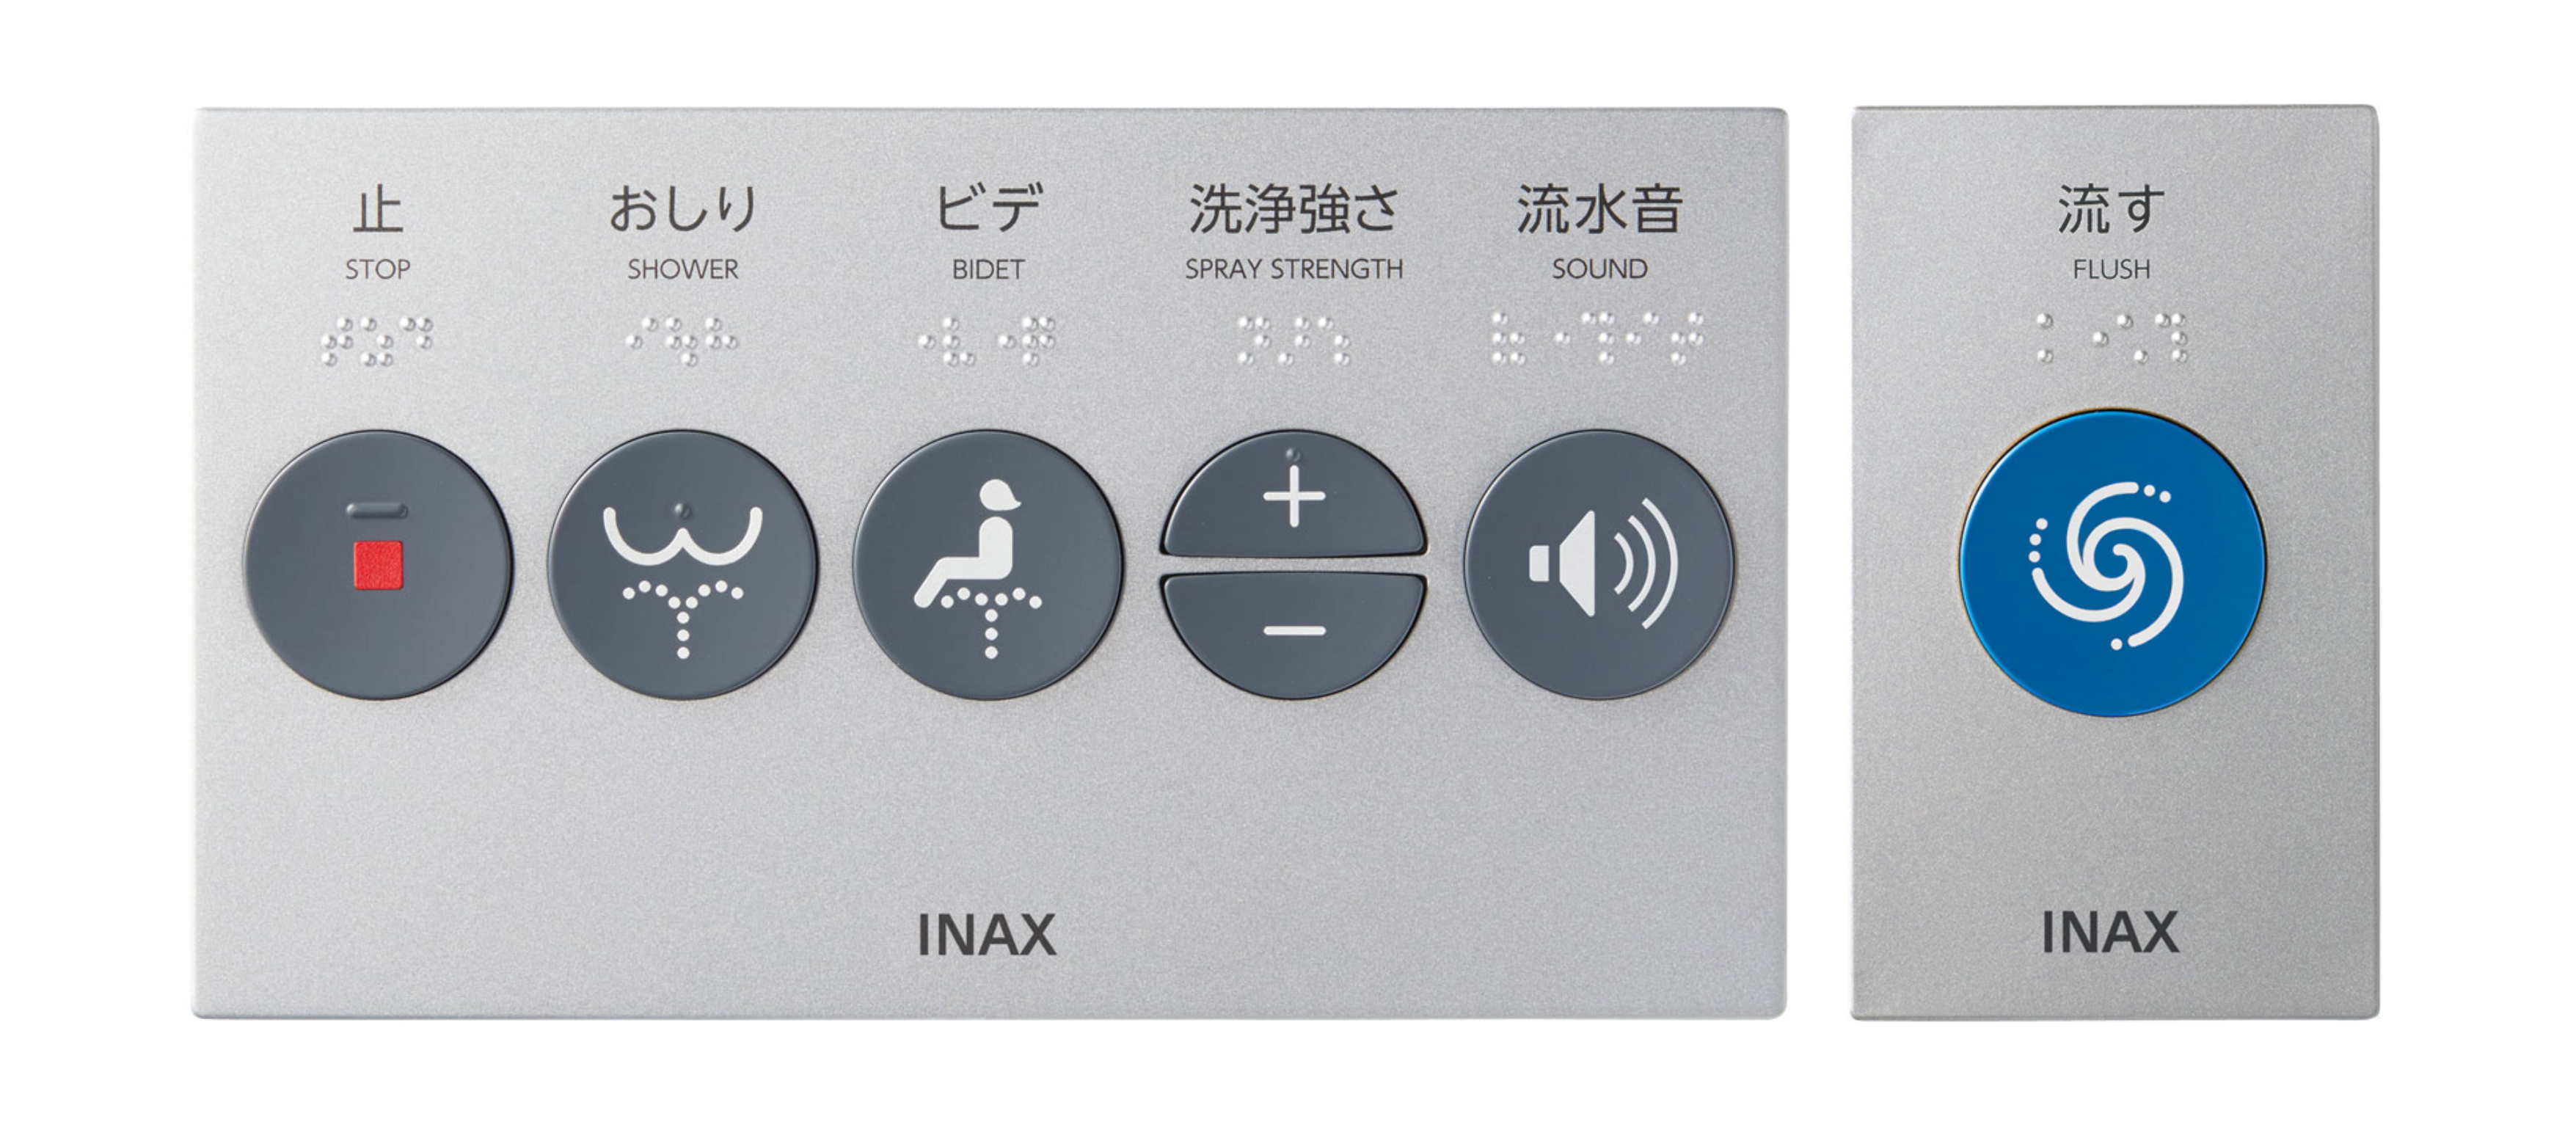 Electricity generating toilet remote controller